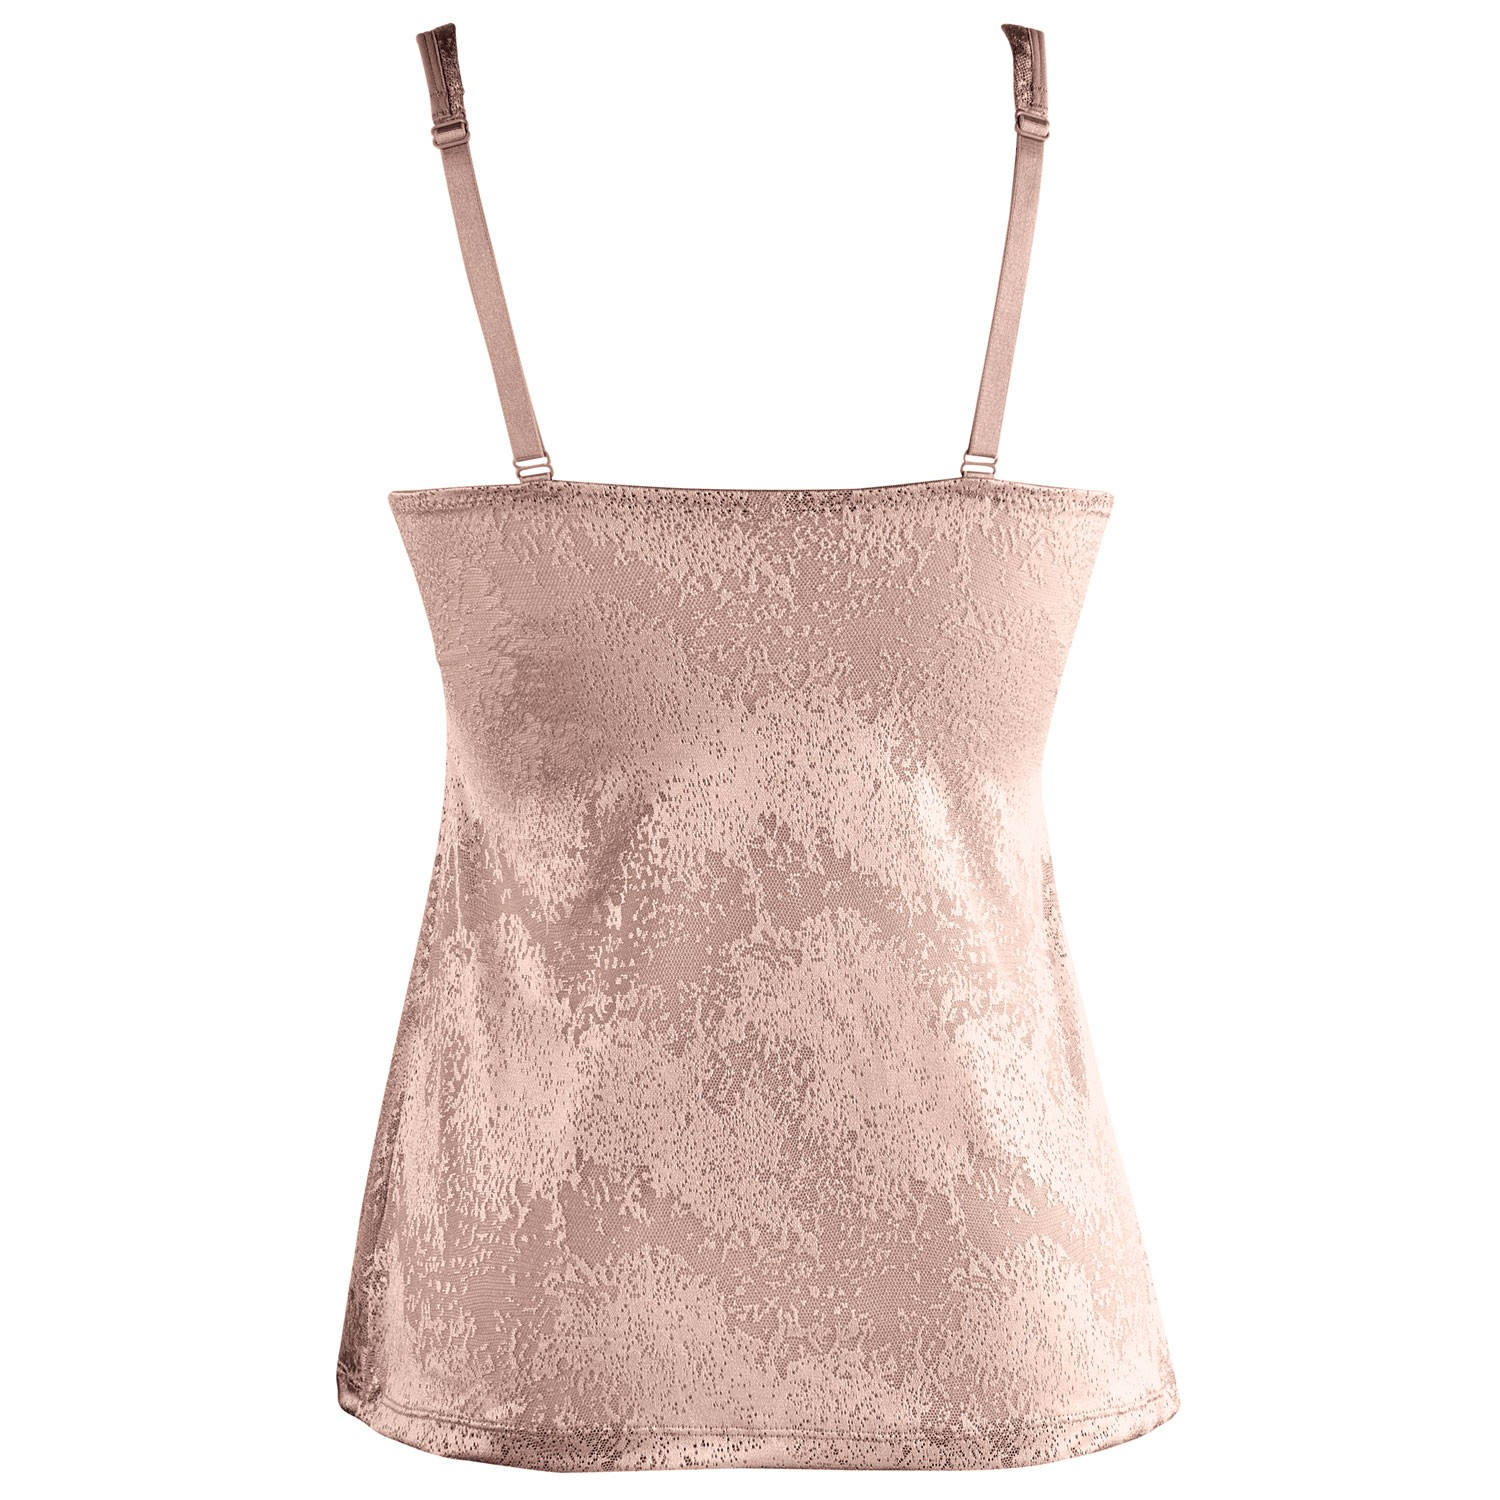 Ahh-By-Rhonda-Shear-Women-039-s-Jacquard-Molded-Cup-Camisole-with-Built-In-Bra thumbnail 10